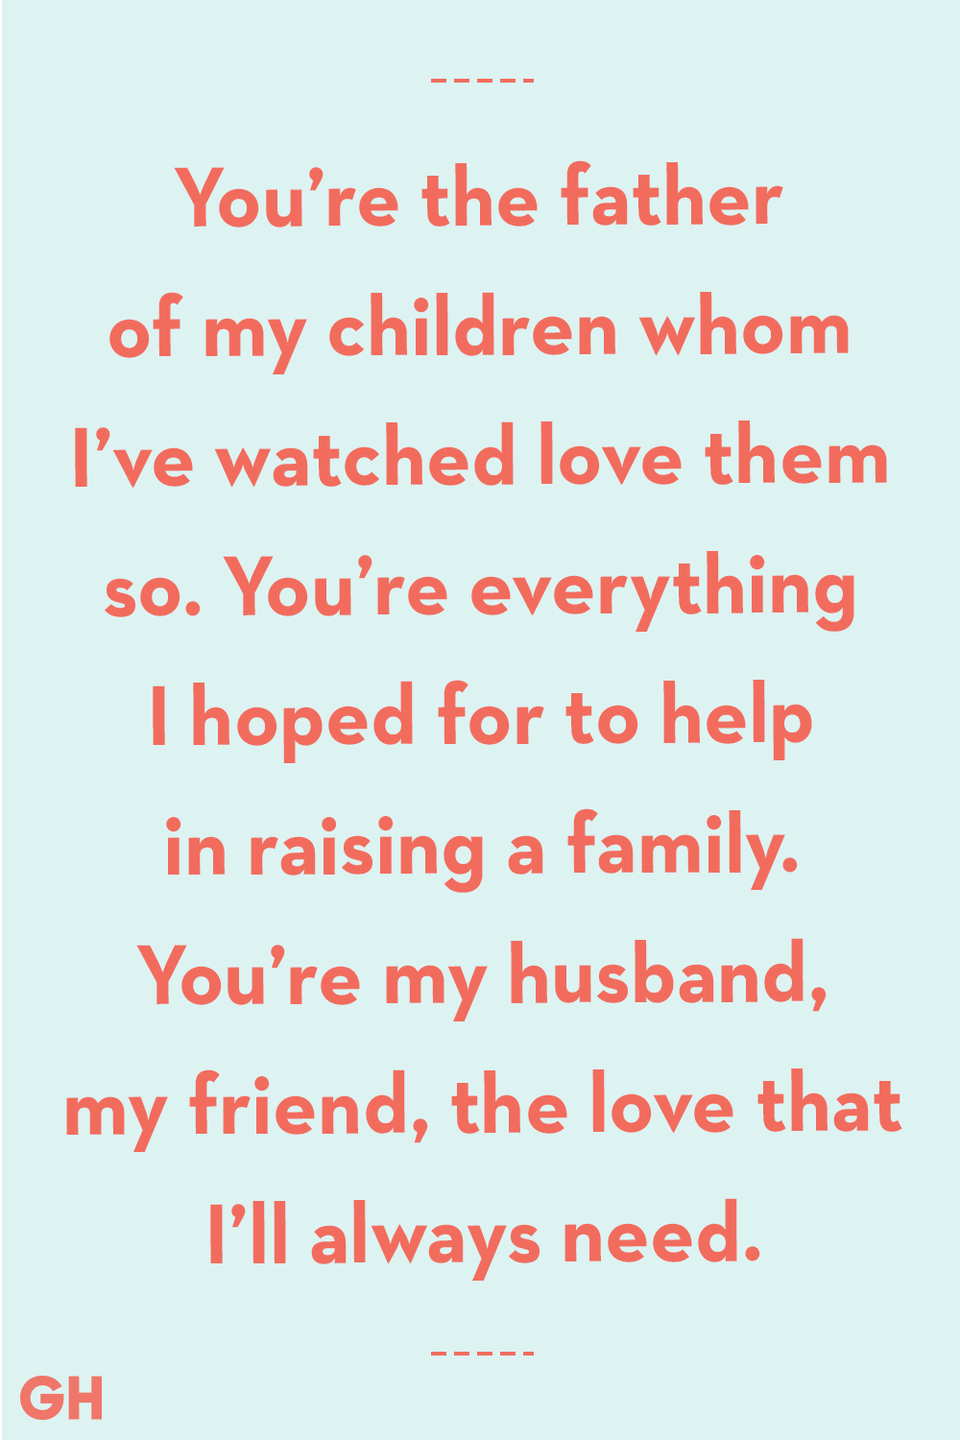 <p>You're the father of my children whom I've watched love them so. You're everything I hoped for to help in raising a family. You're my husband, my friend, the love that I'll always need.</p>